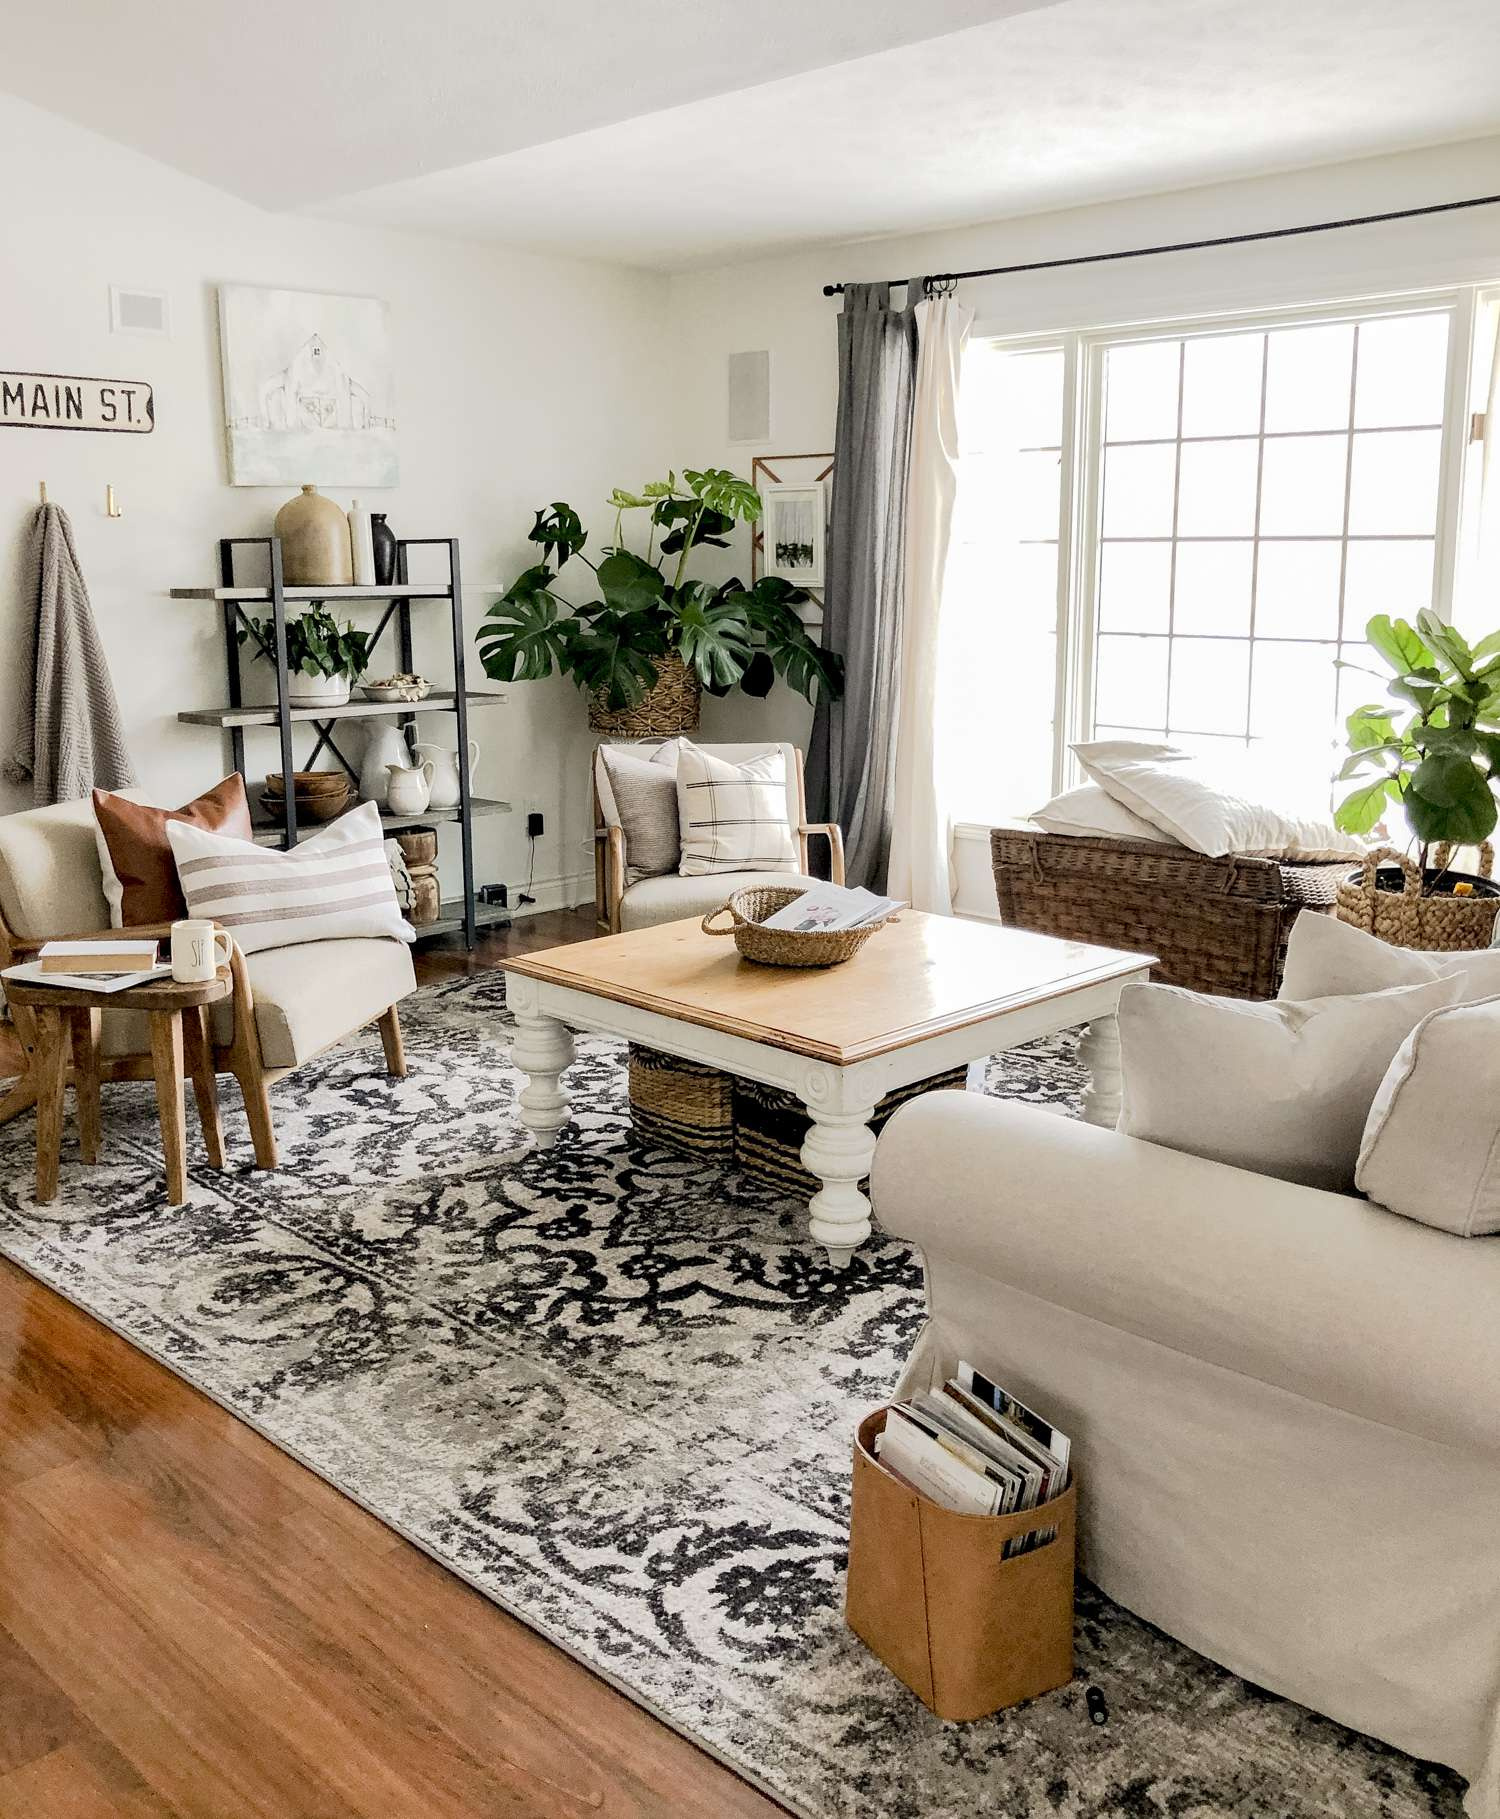 Modern farmhouse living room decor.